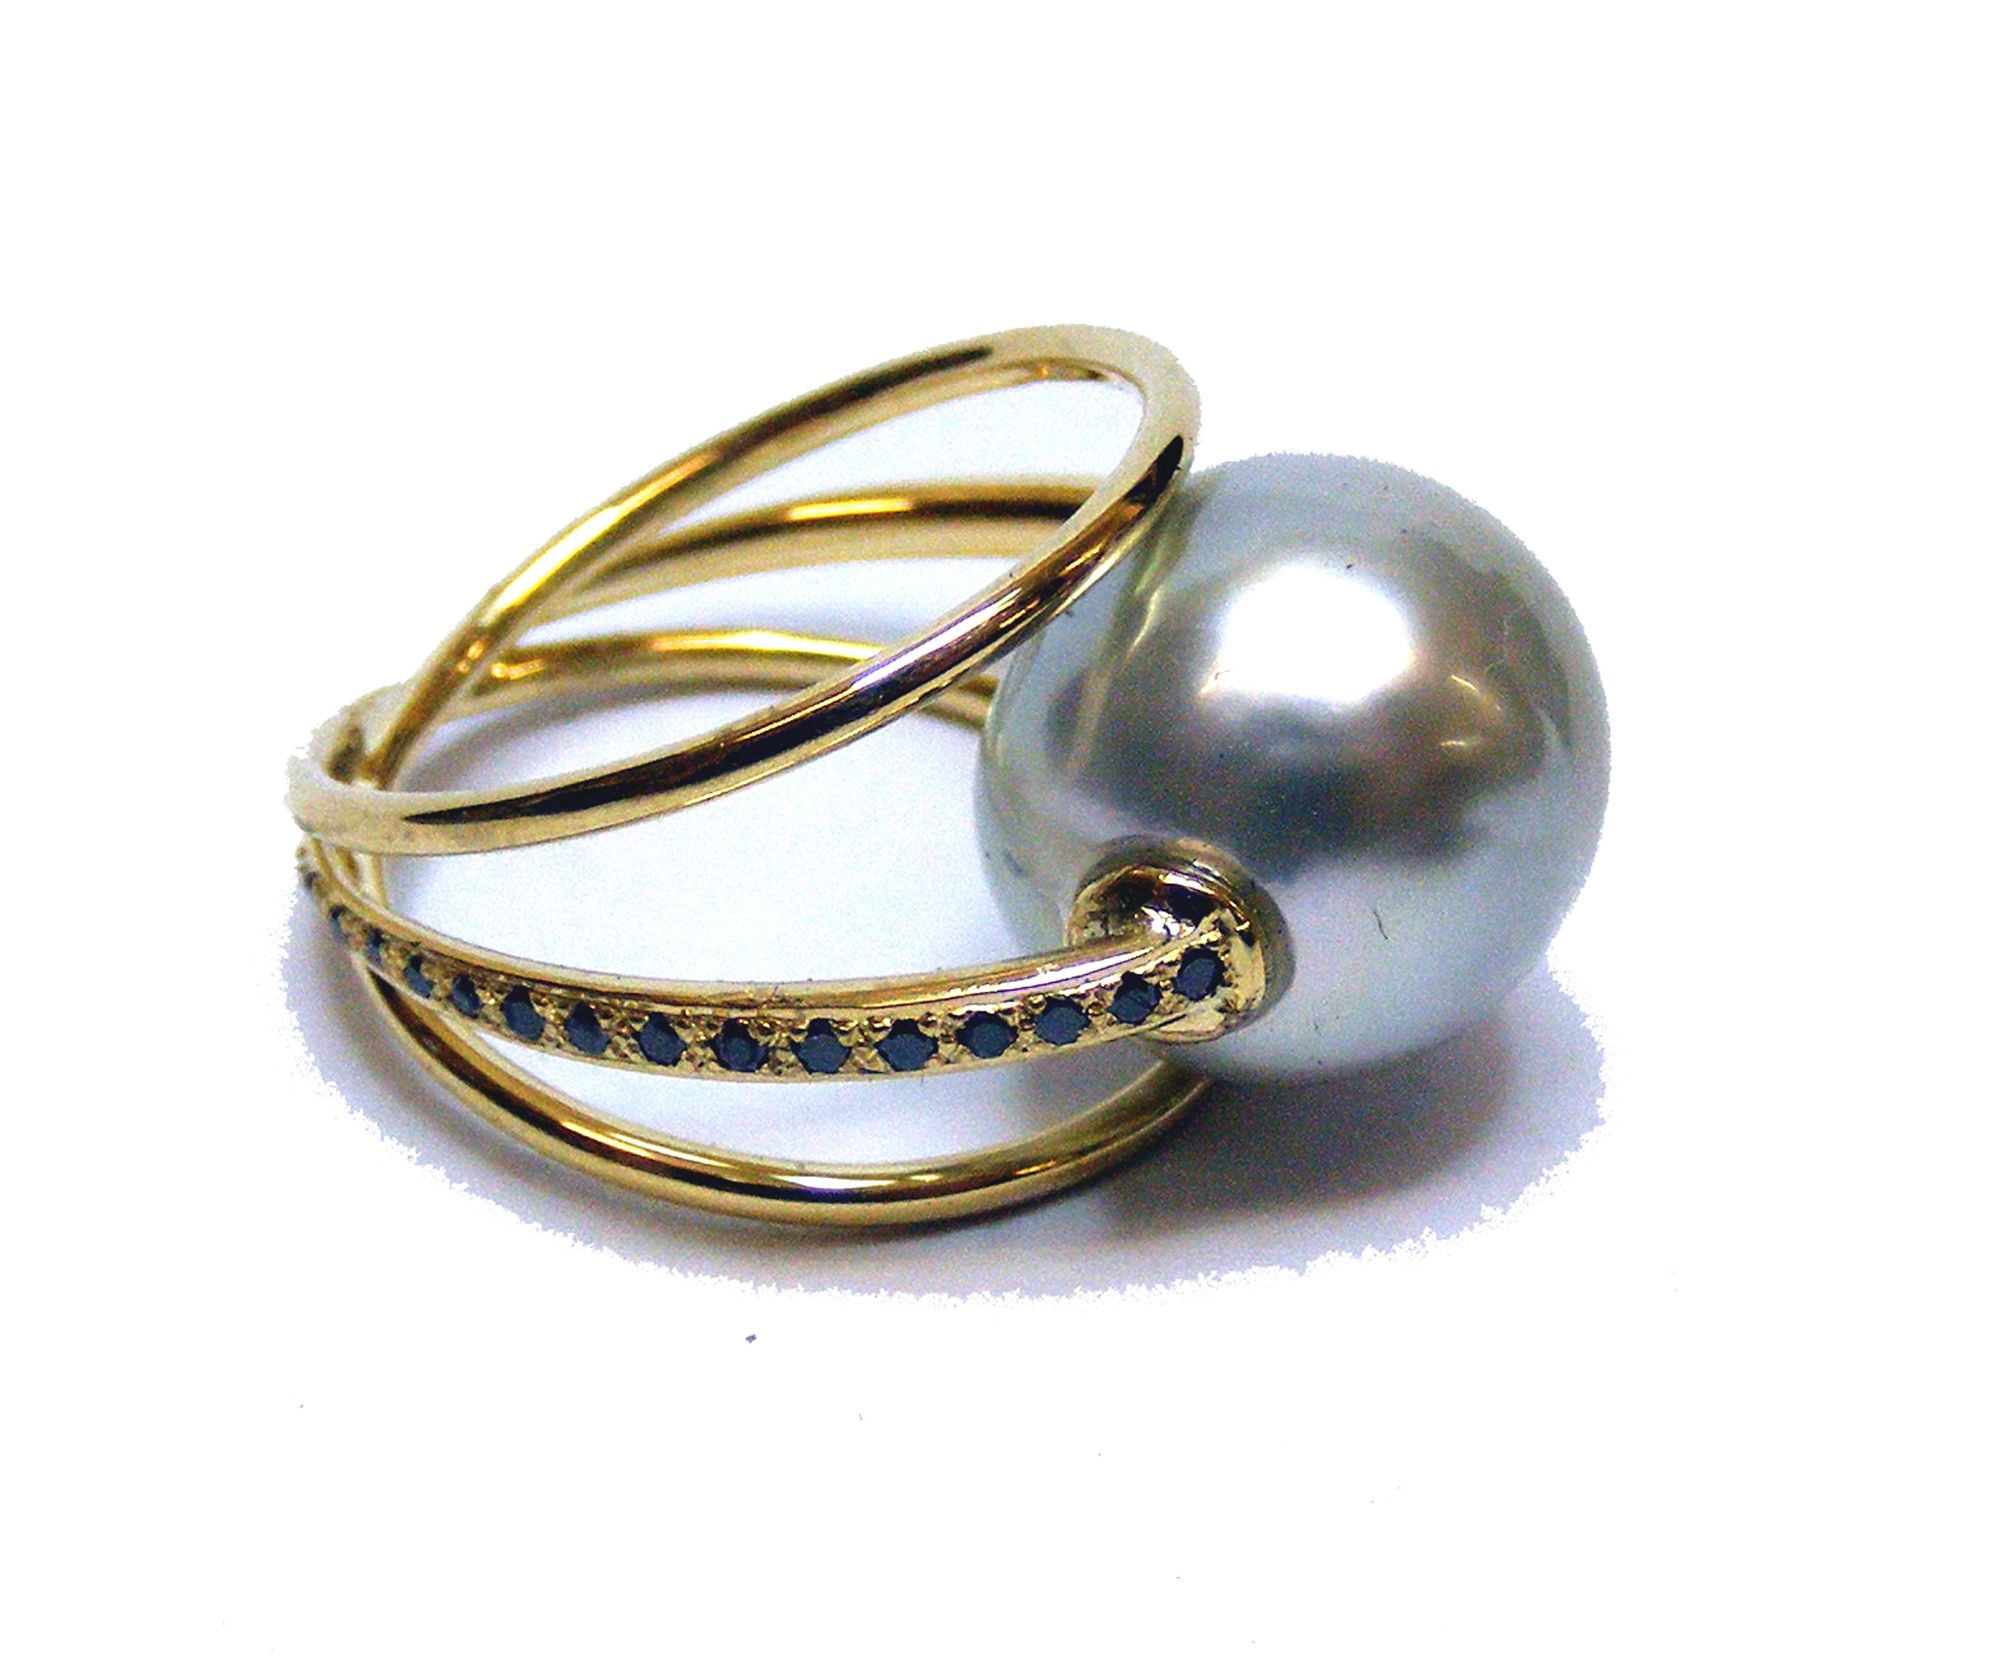 Thaitian Pearl and black diamonds, !8 carat yellow gold ring